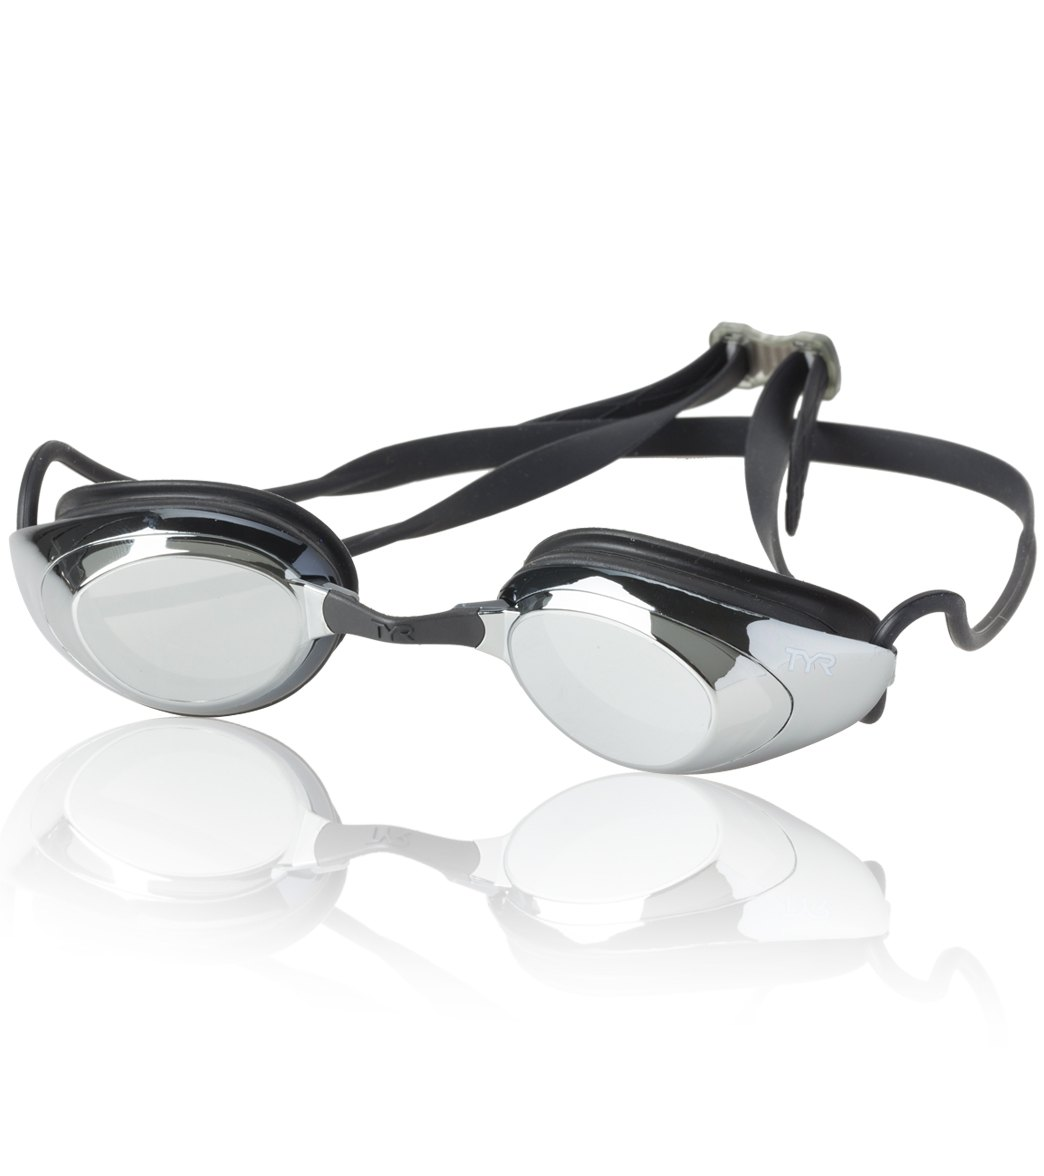 9d74eecd385 TYR Black Hawk Racing Mirrored Performance Goggle at SwimOutlet.com